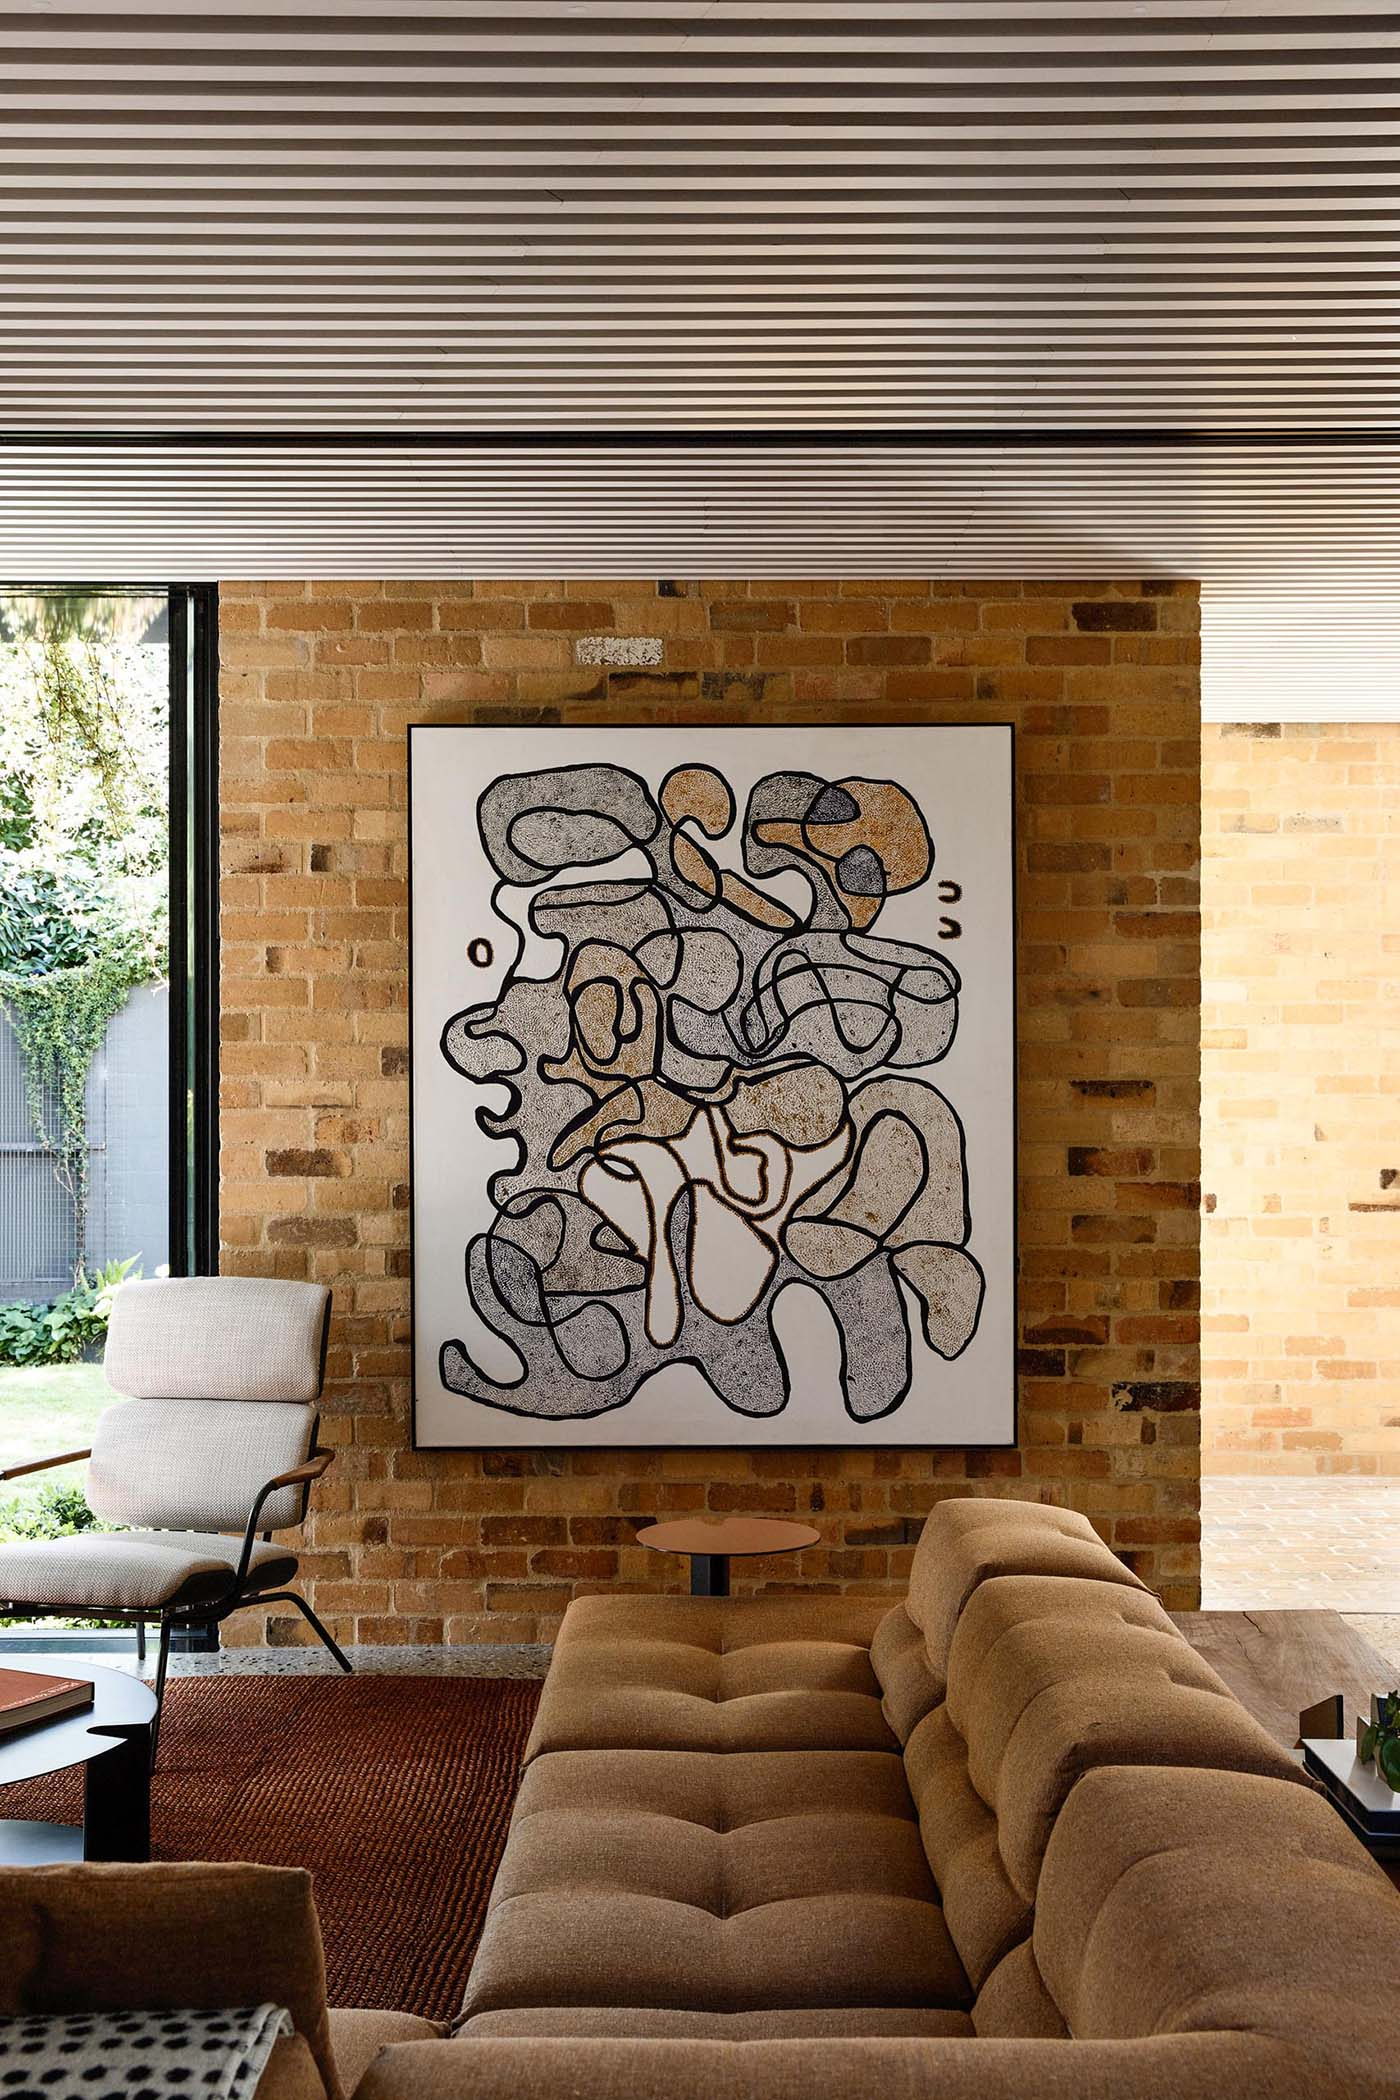 Inside this modern home, the living room is furnished with a large sofa and abstract artwork, while a white slat ceiling adds a unique design element.